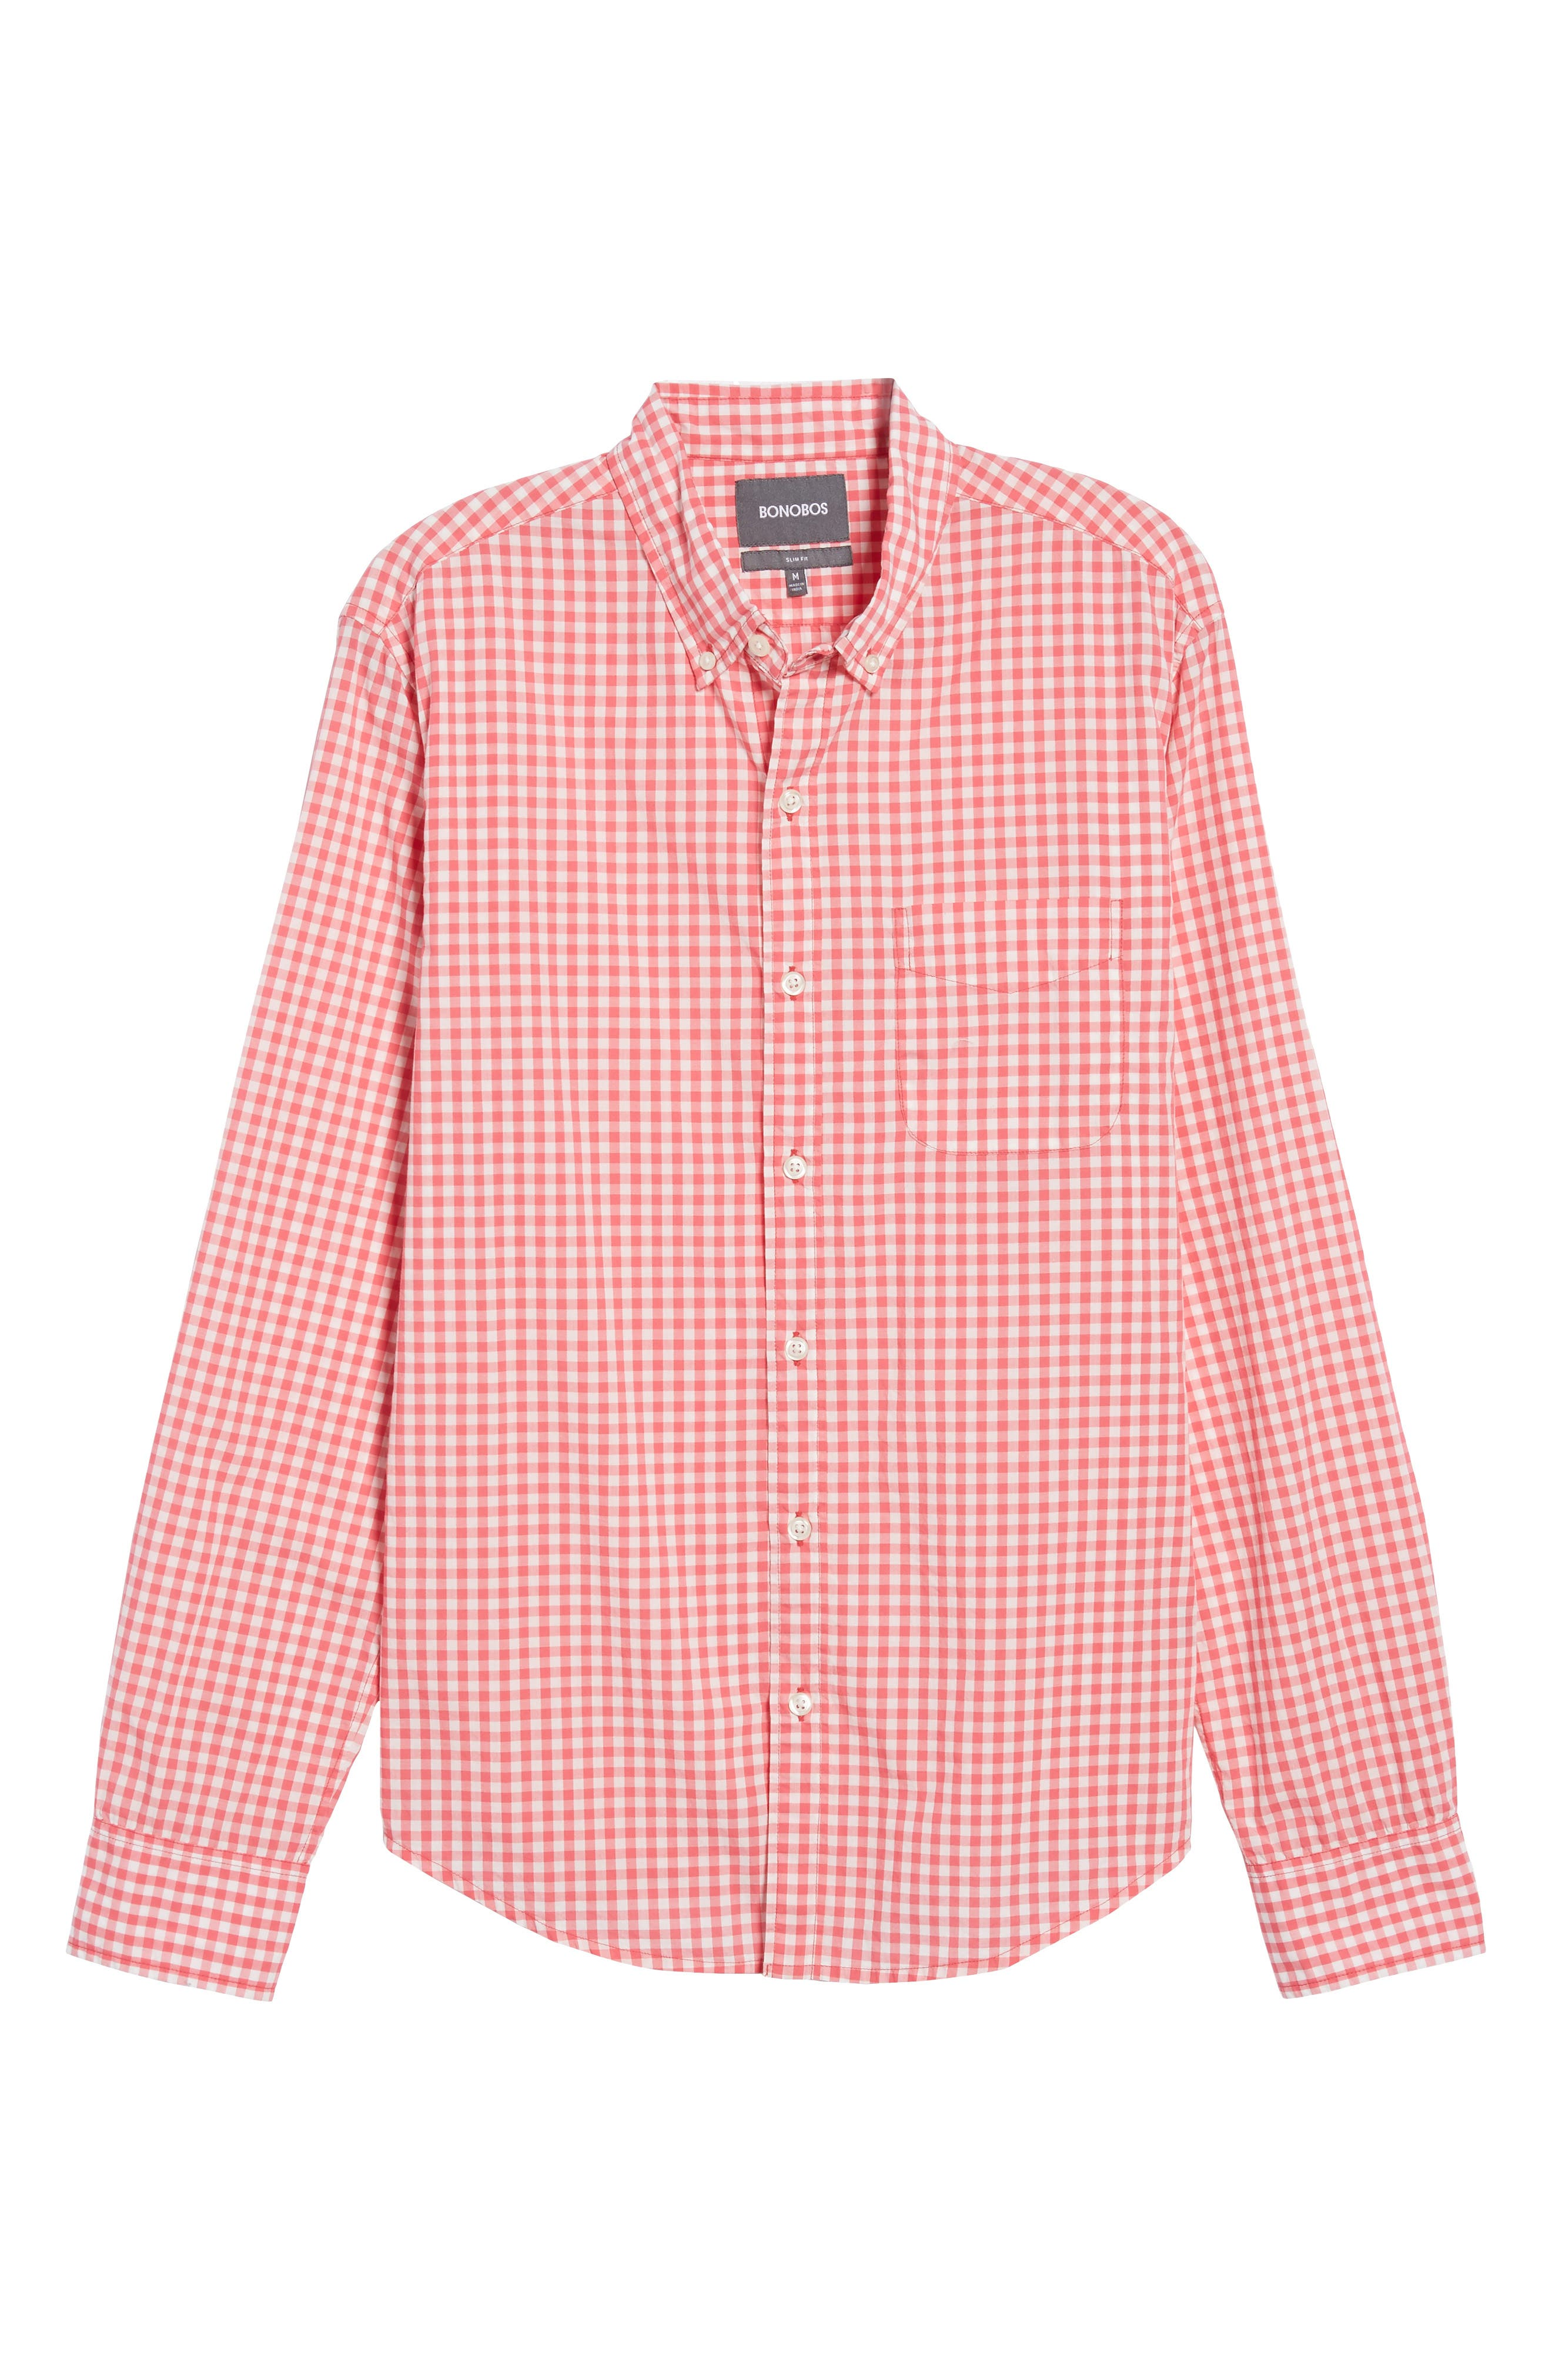 Slim Fit Summerweight Check Sport Shirt,                             Alternate thumbnail 6, color,                             Coral Ribbon Gingham